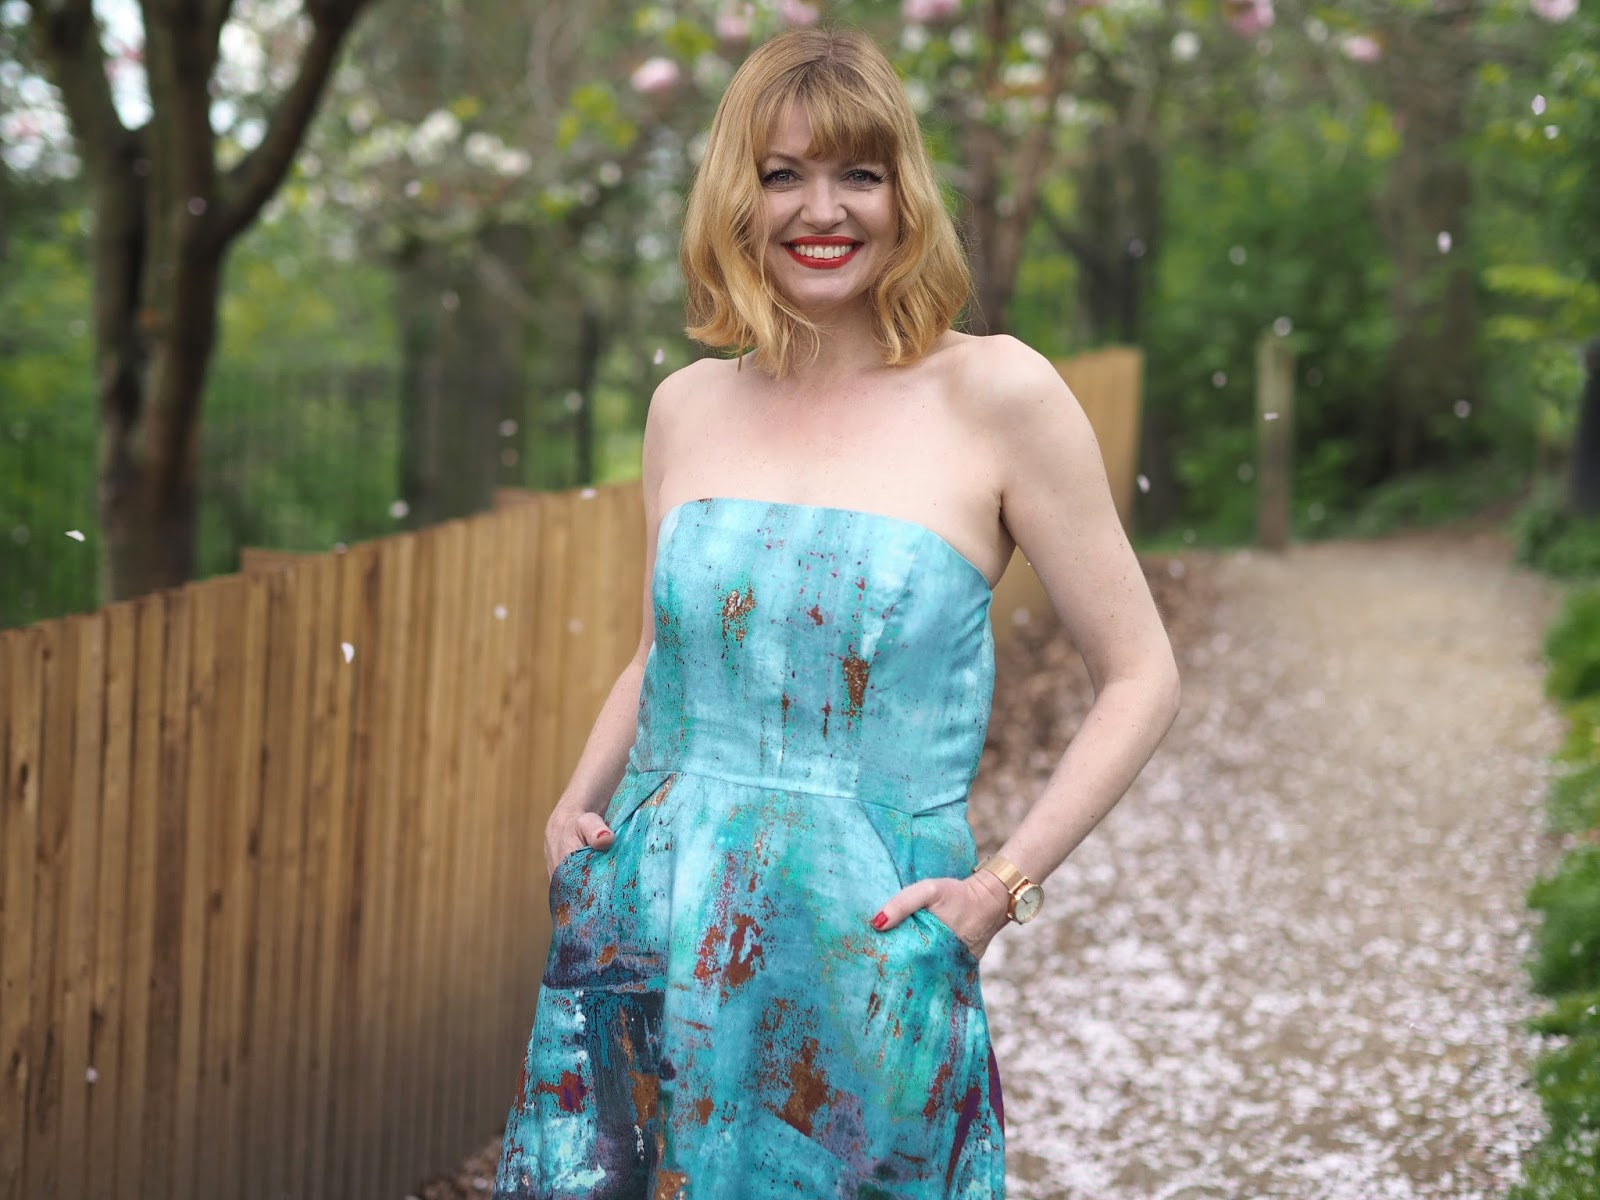 Perfect strapless dress for a spring summer wedding by Alie Street, over 40 fashion, half length